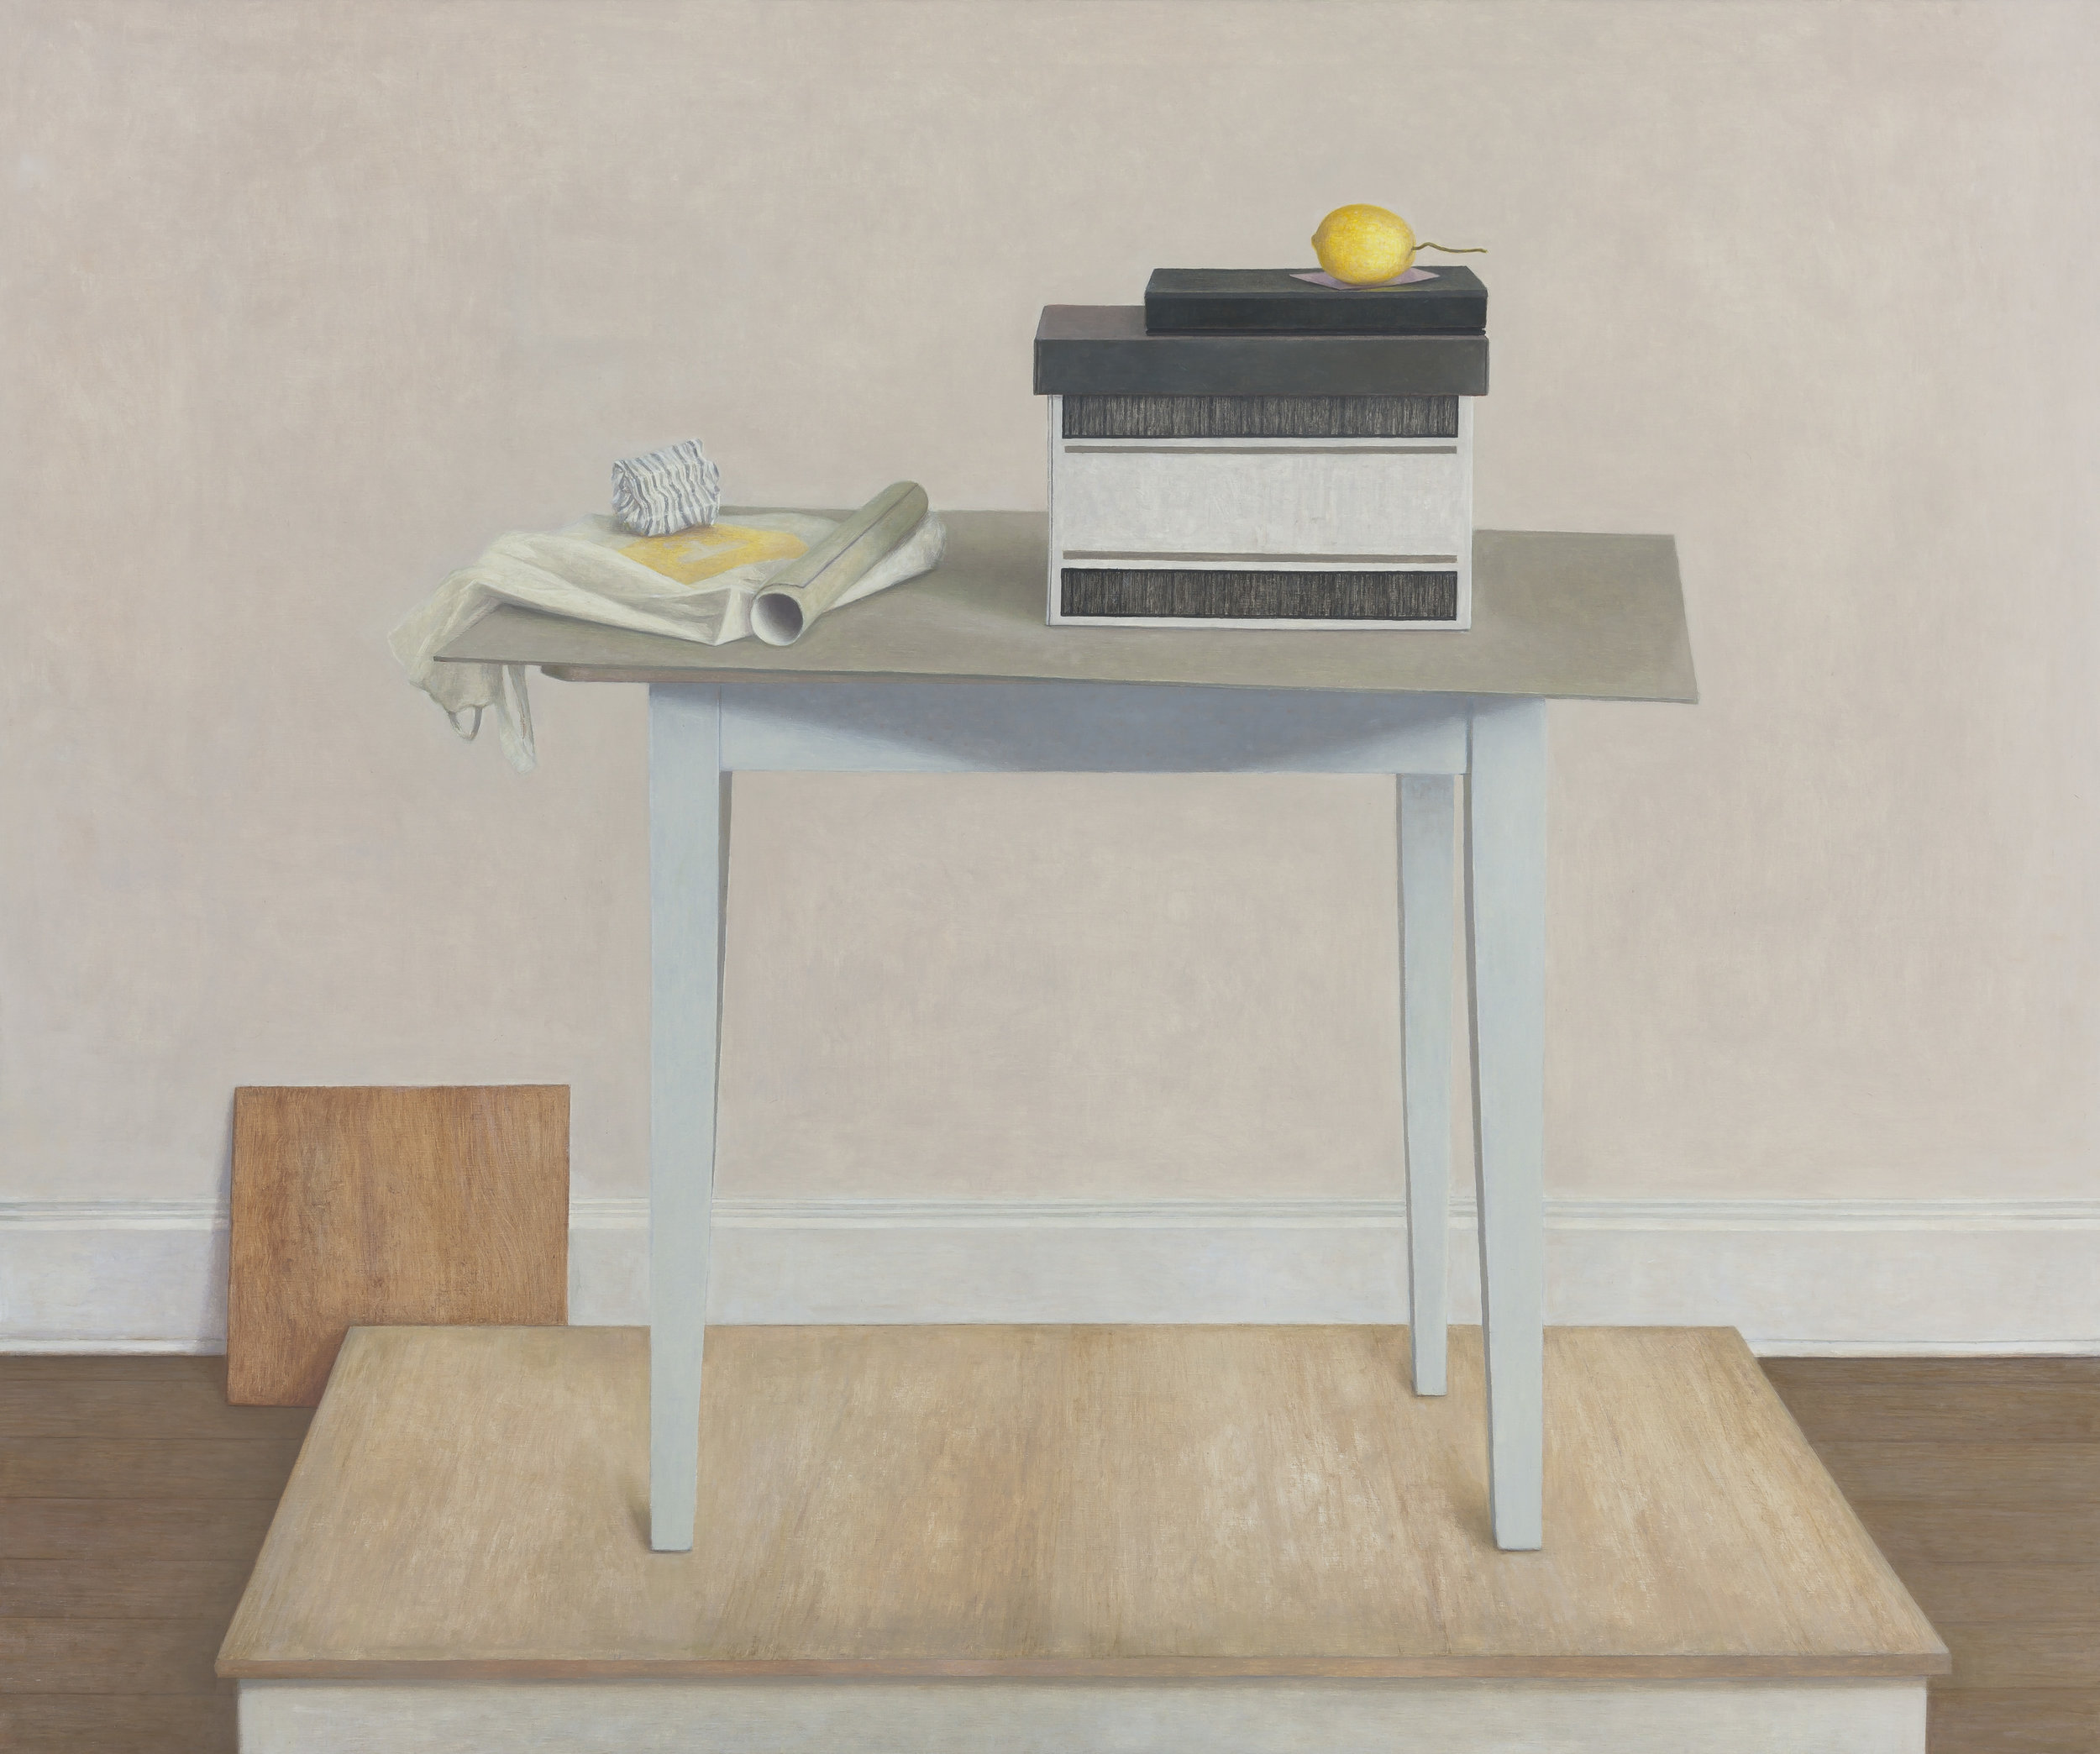 JOHN SCURRY | PAINTINGS   7 JUNE - 2 JULY 2017